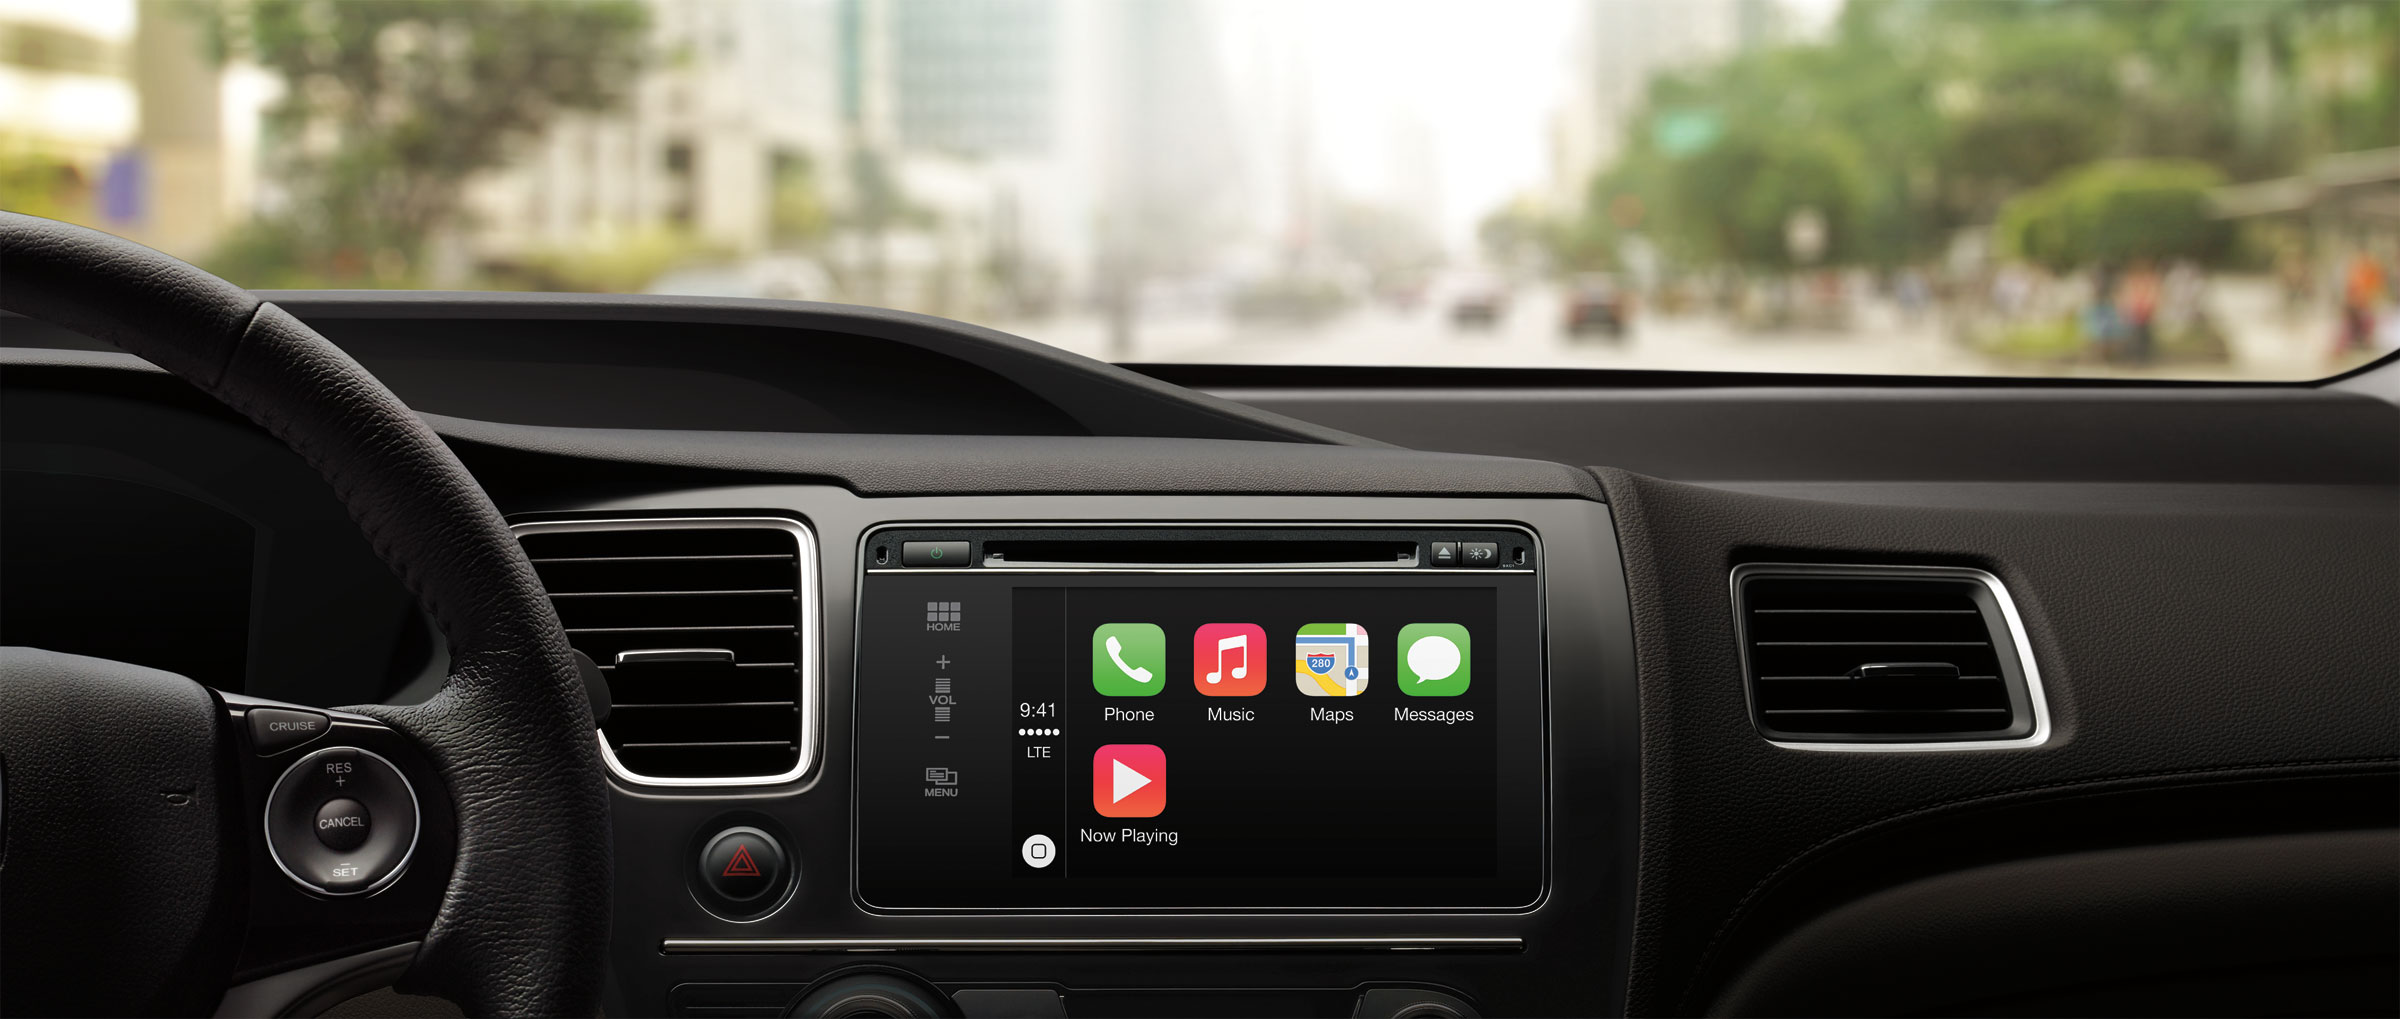 CarPlay_Honda_Homescreen-PRINT